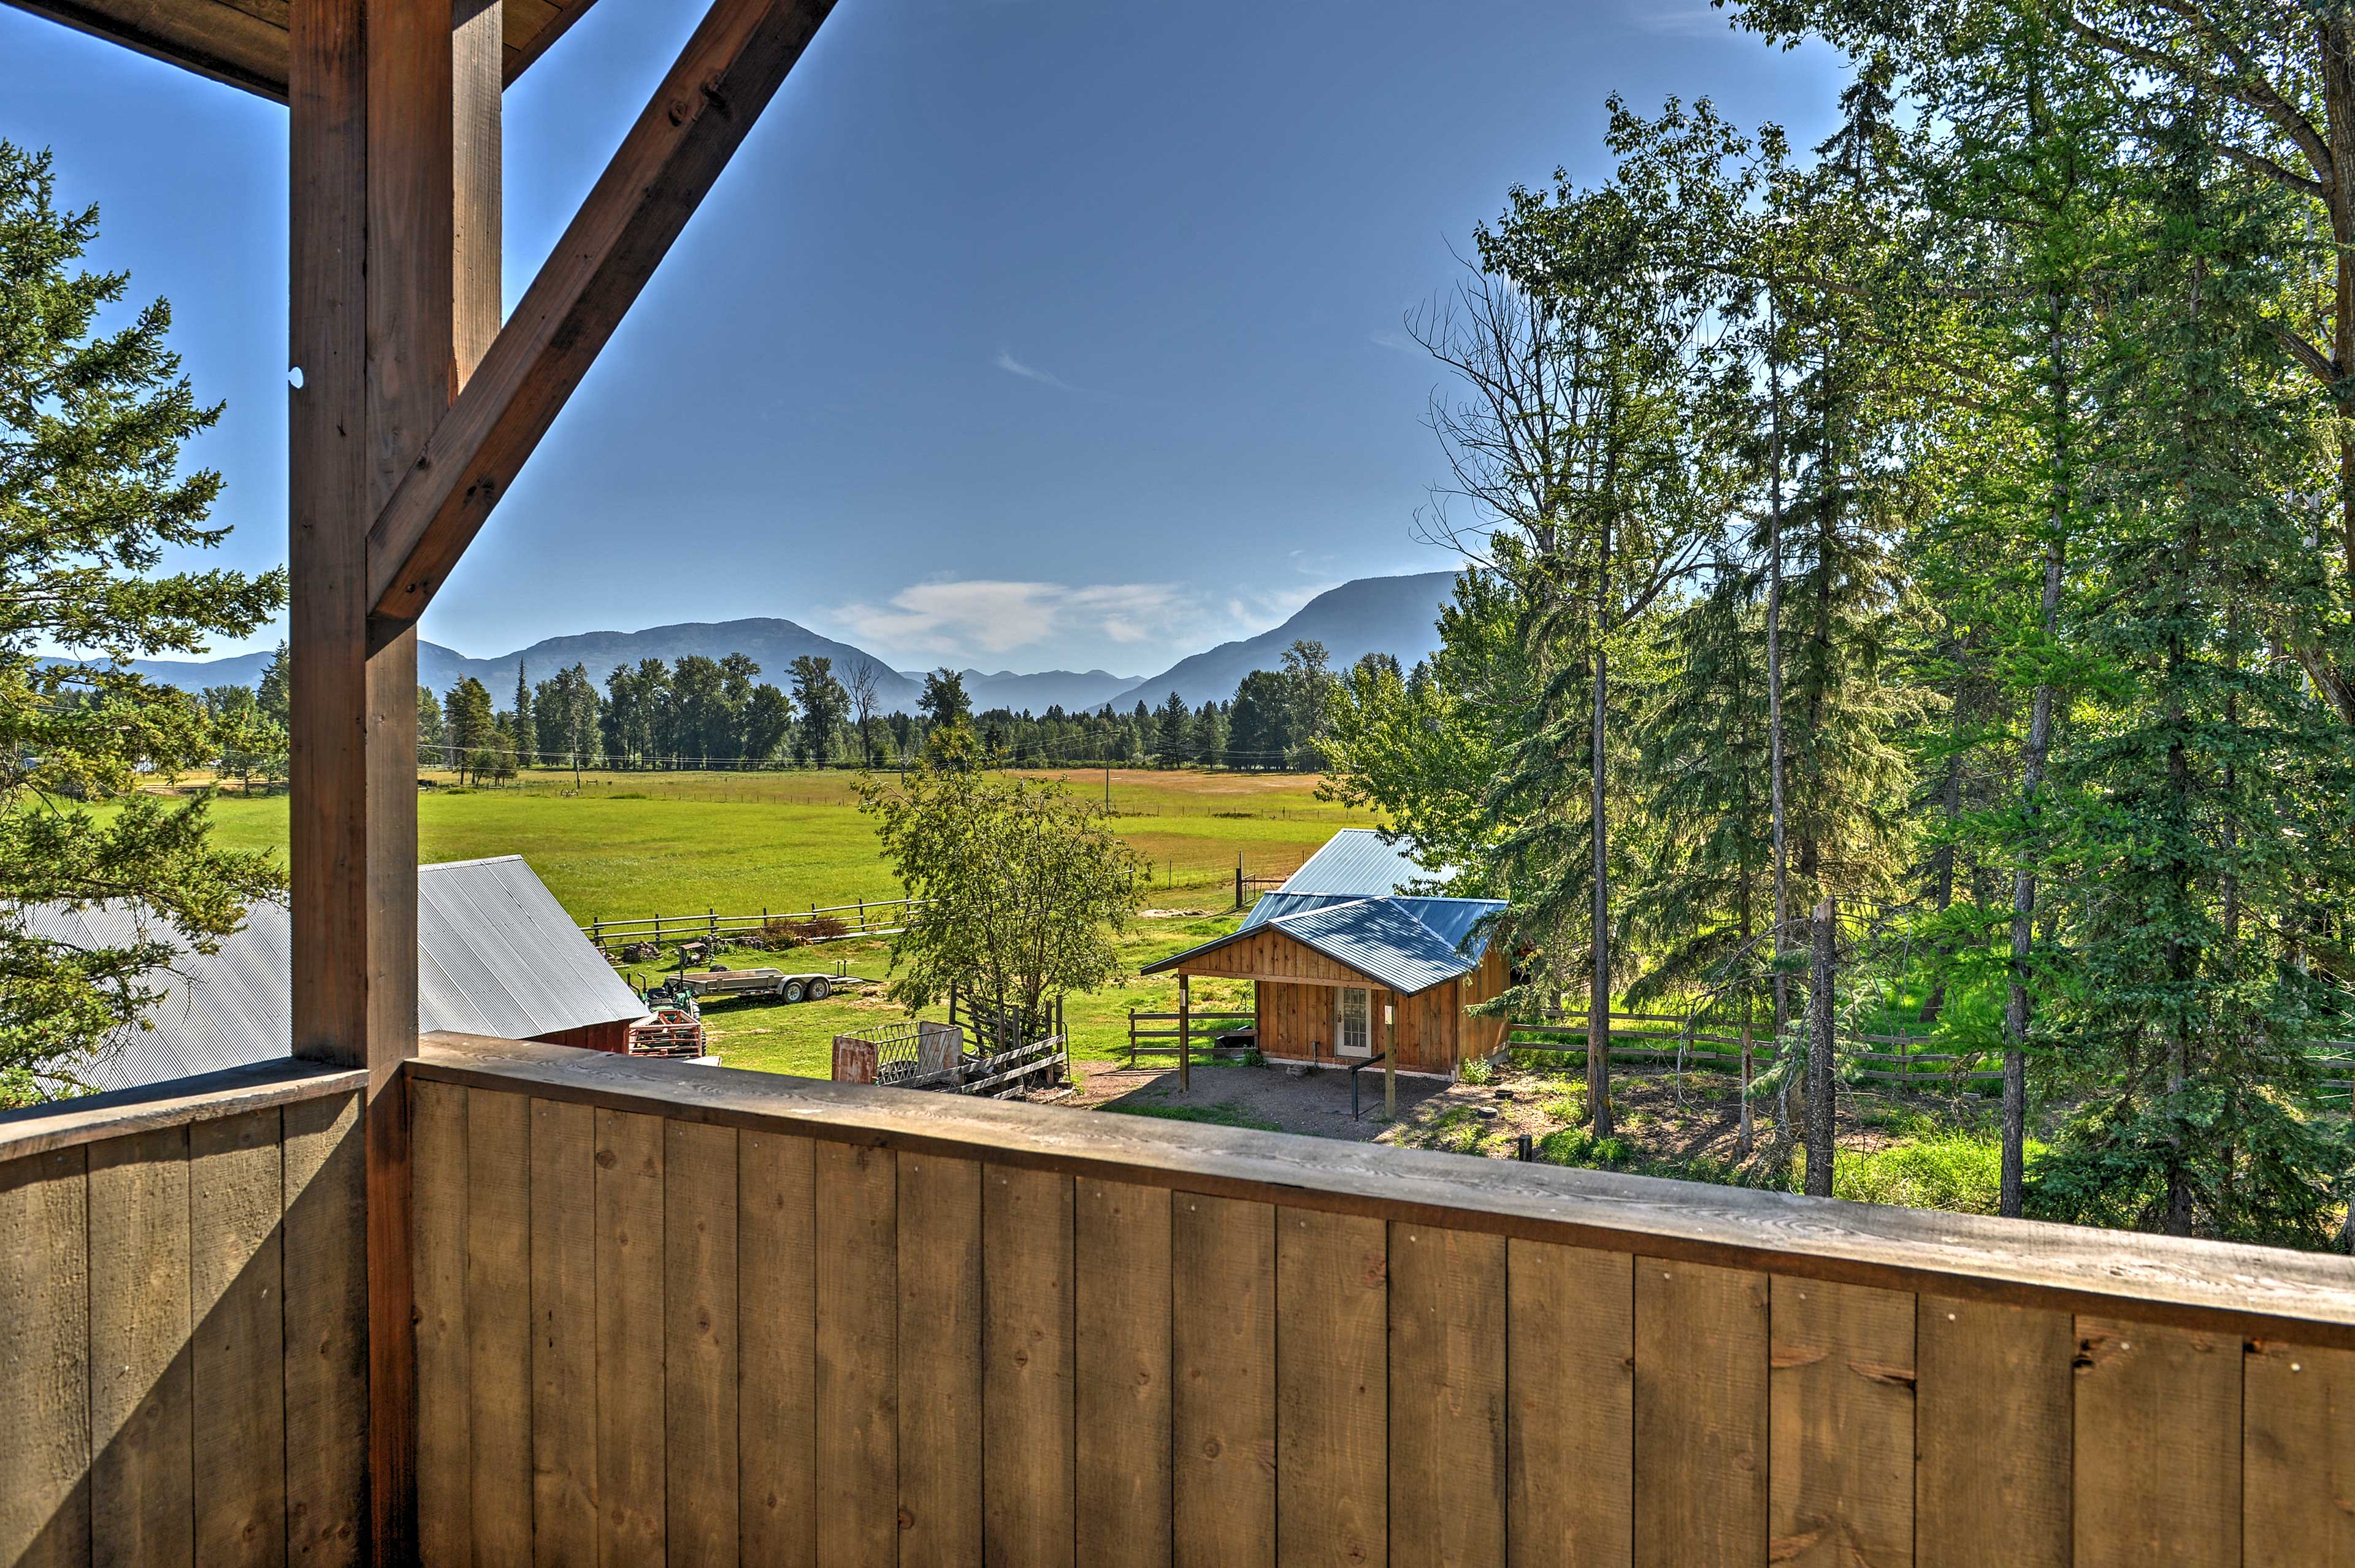 From the deck you'll have views of Flathead Valley and the Flathead River.